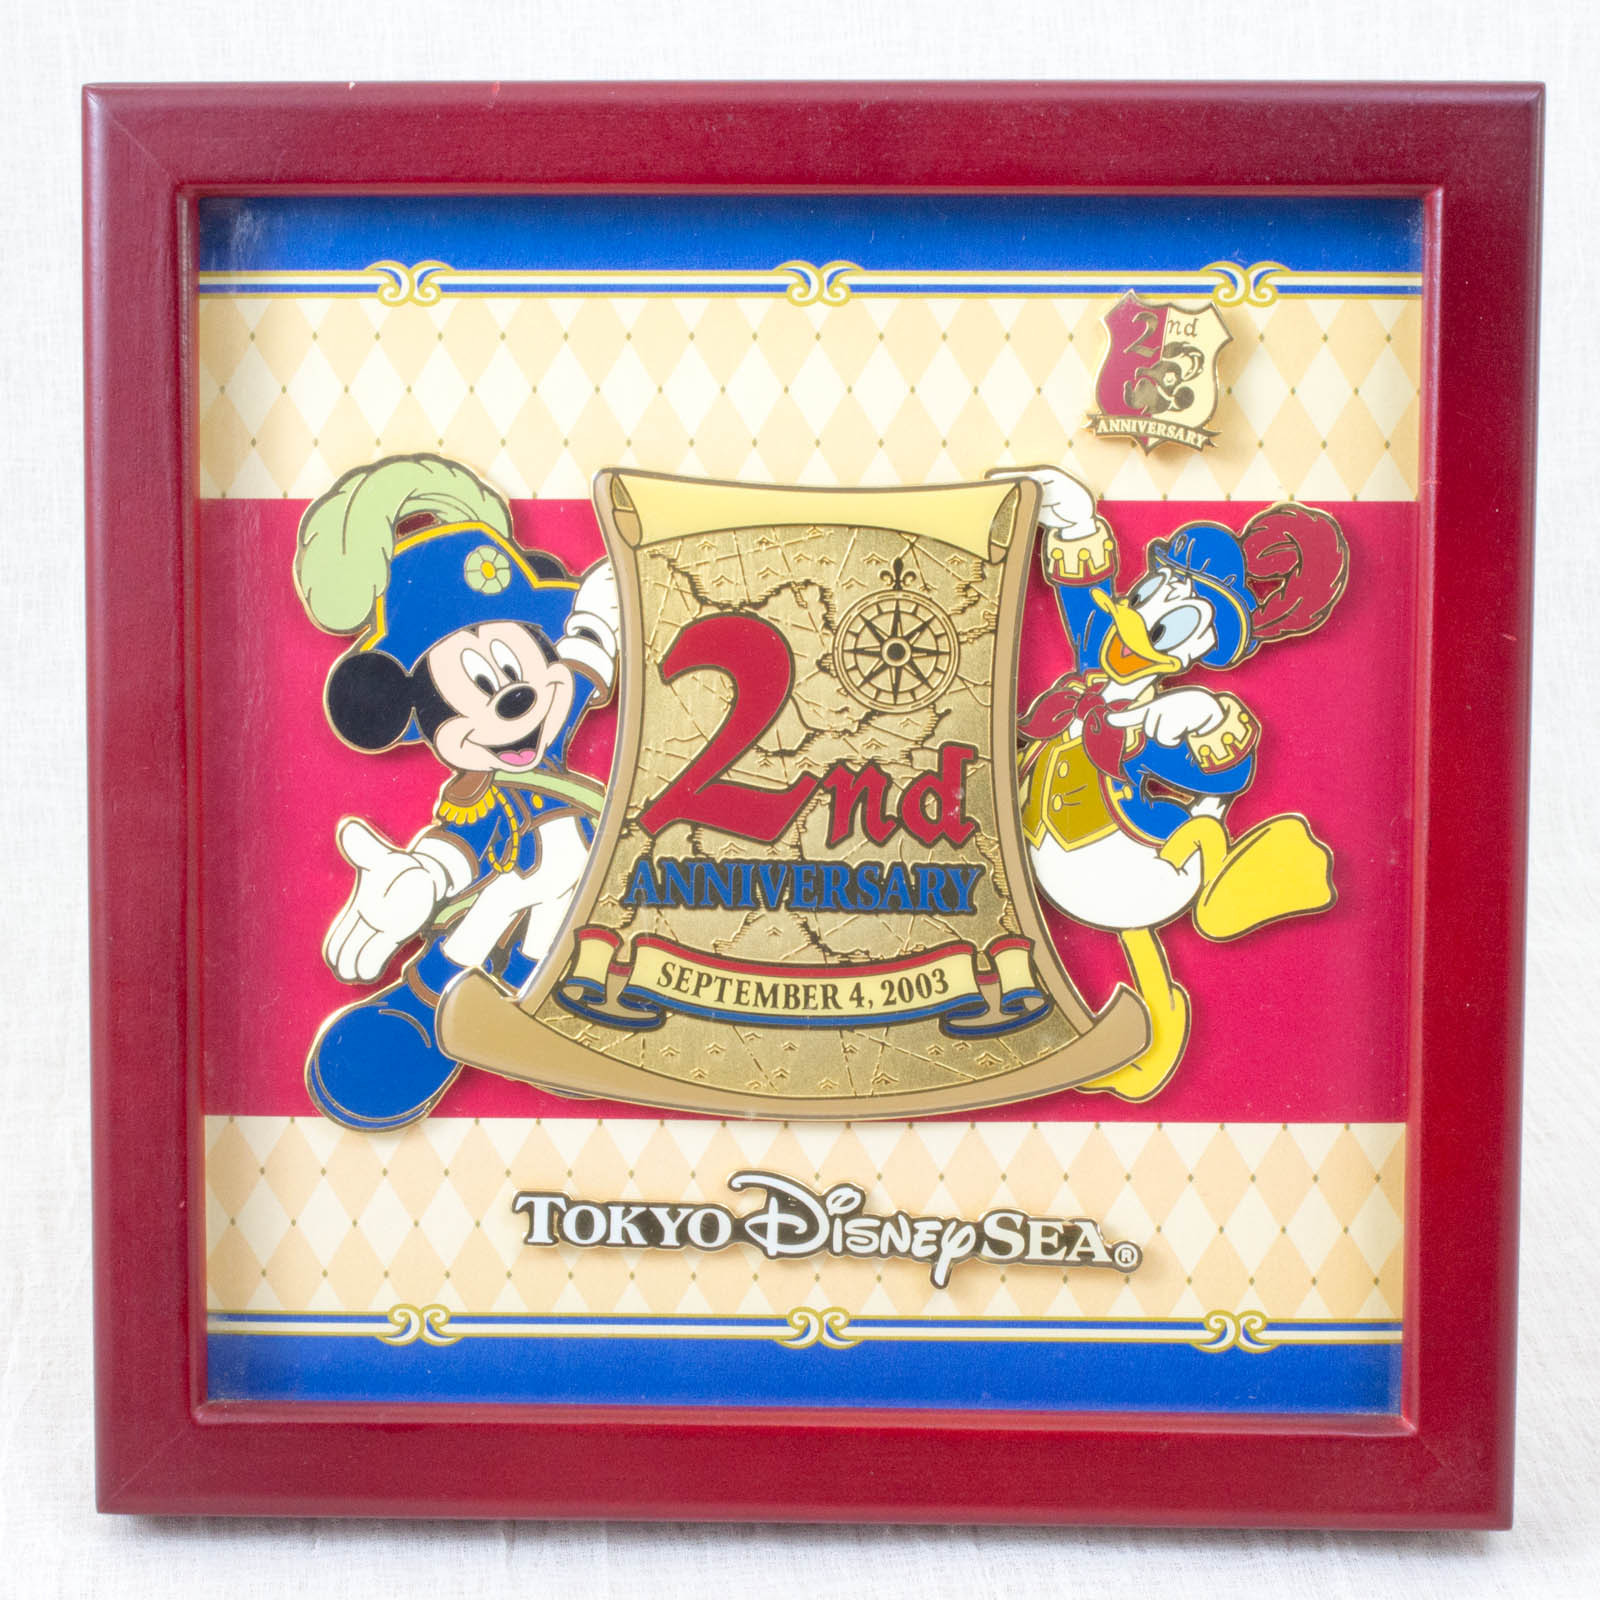 Tokyo Disney Sea Mickey Mouse & Donald Duck Metal Relief Pins 2nd Anniversary